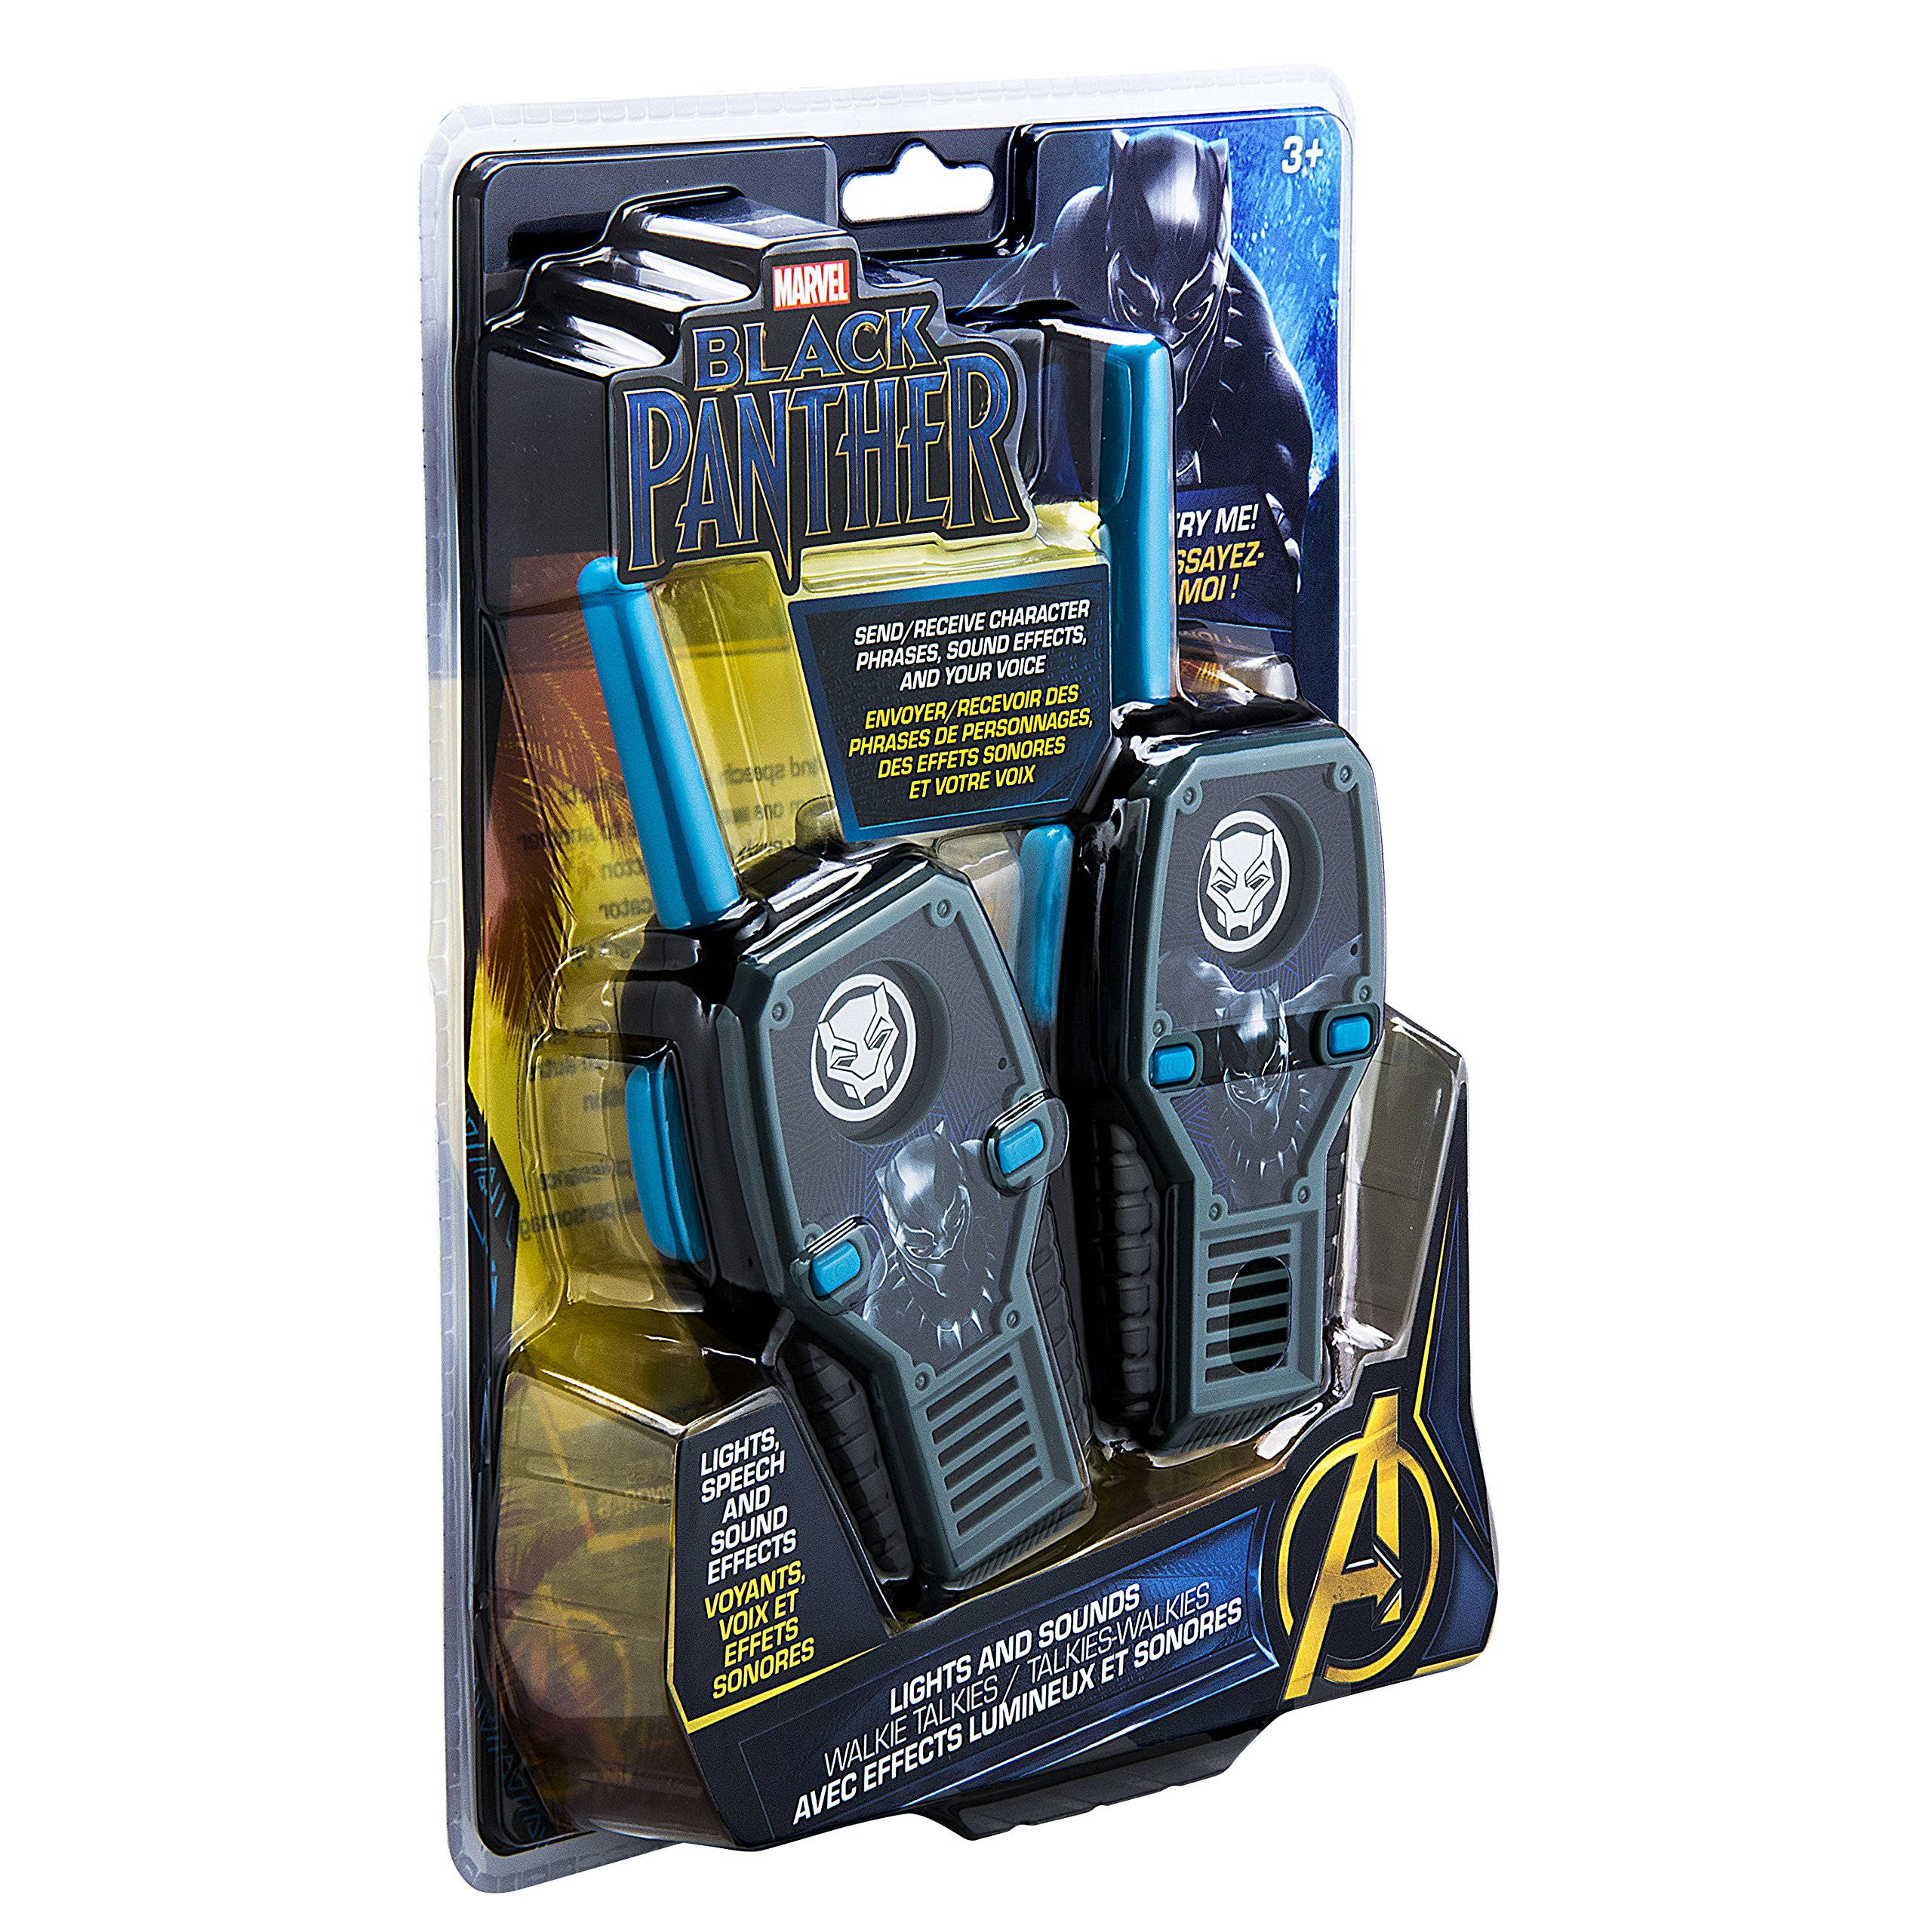 eKids Black Panther FRS Walkie Talkies with Lights & Sounds Kid Friendly Easy to Use by eKids (Image #7)